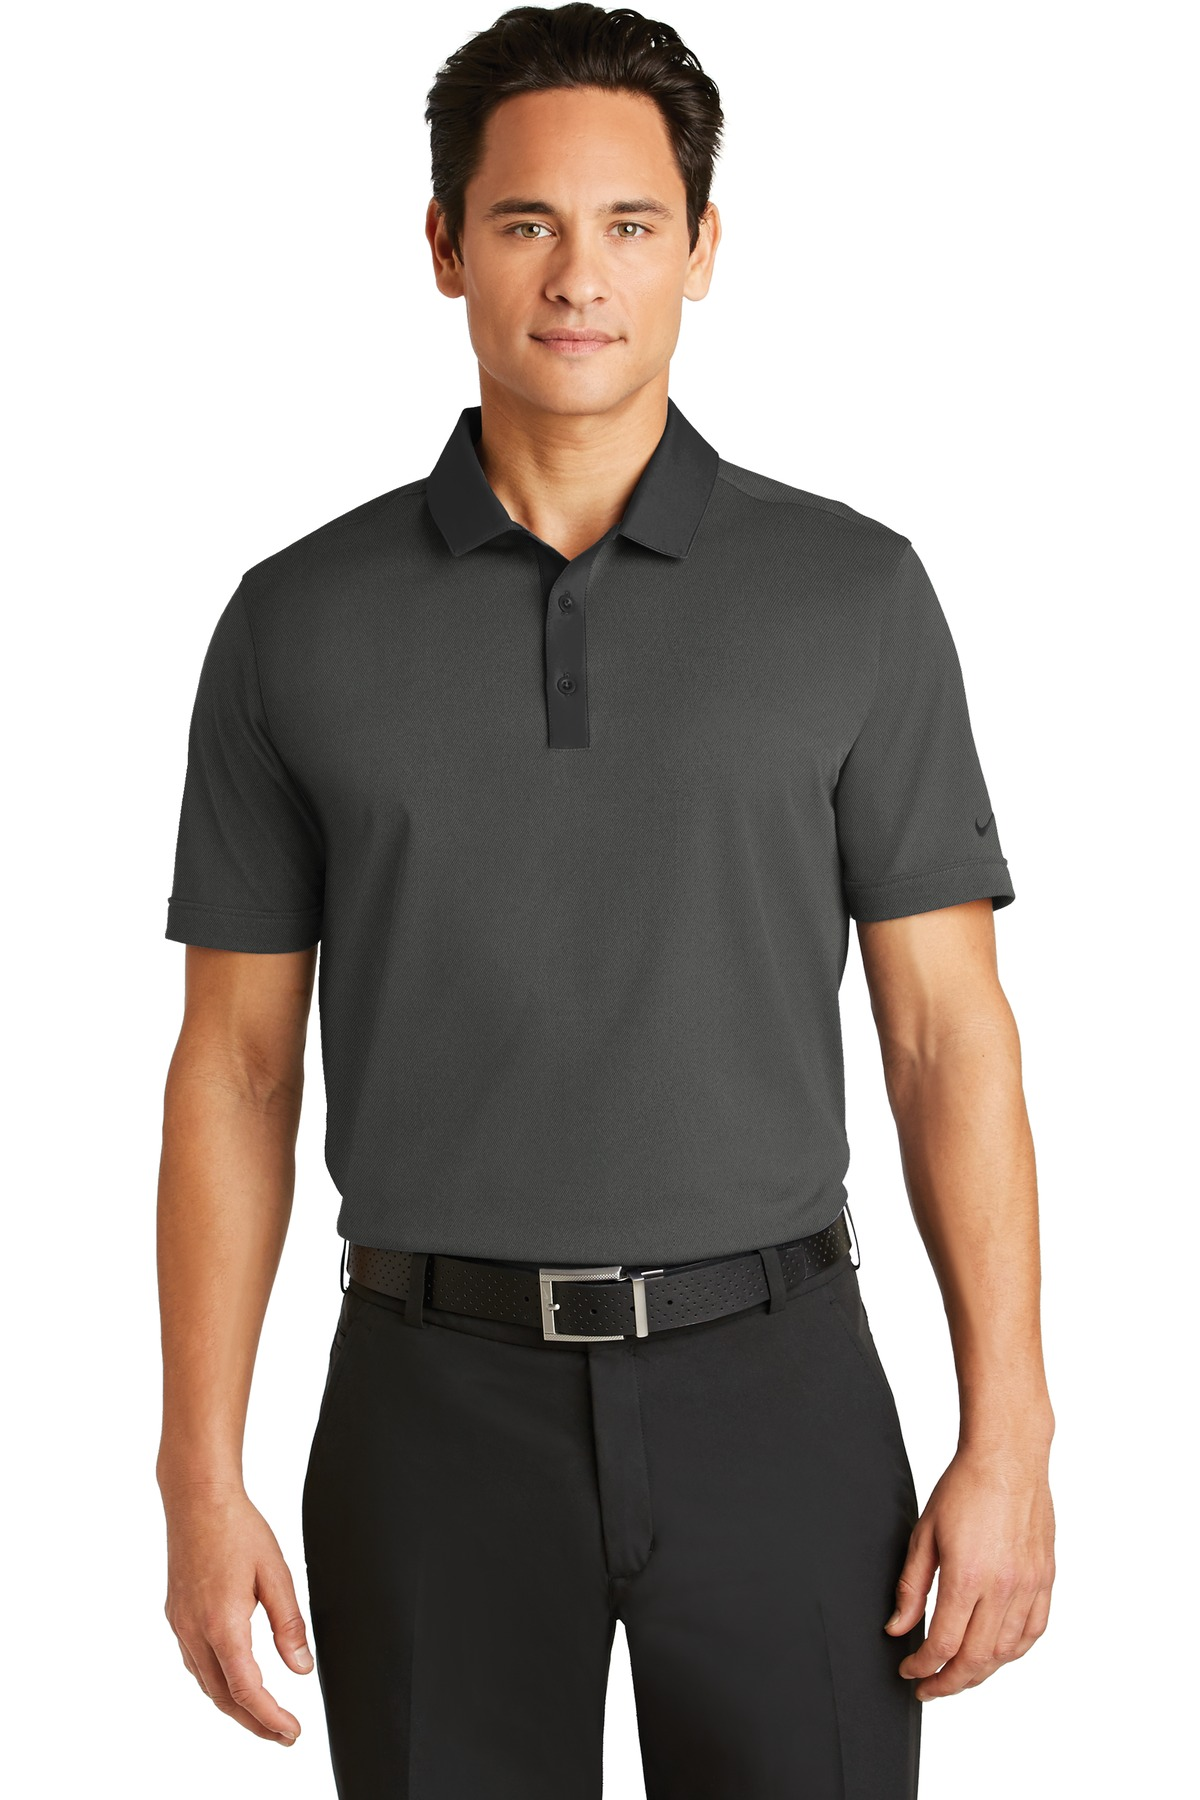 Nike 779798 for Nike dri fit embroidered shirts